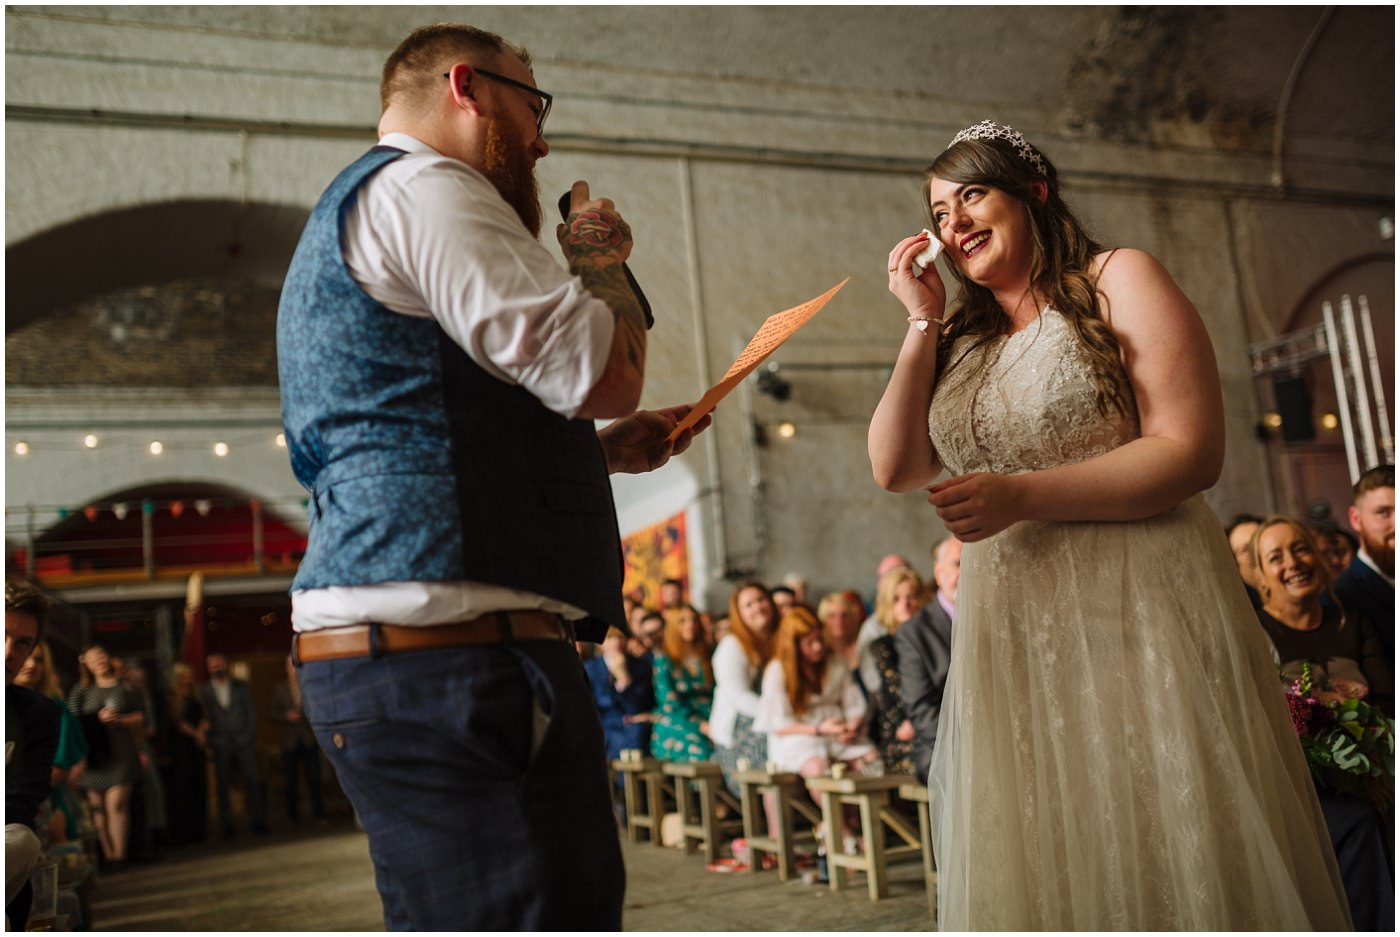 Bride and Groom exchange vows at Manchester Urban Wedding